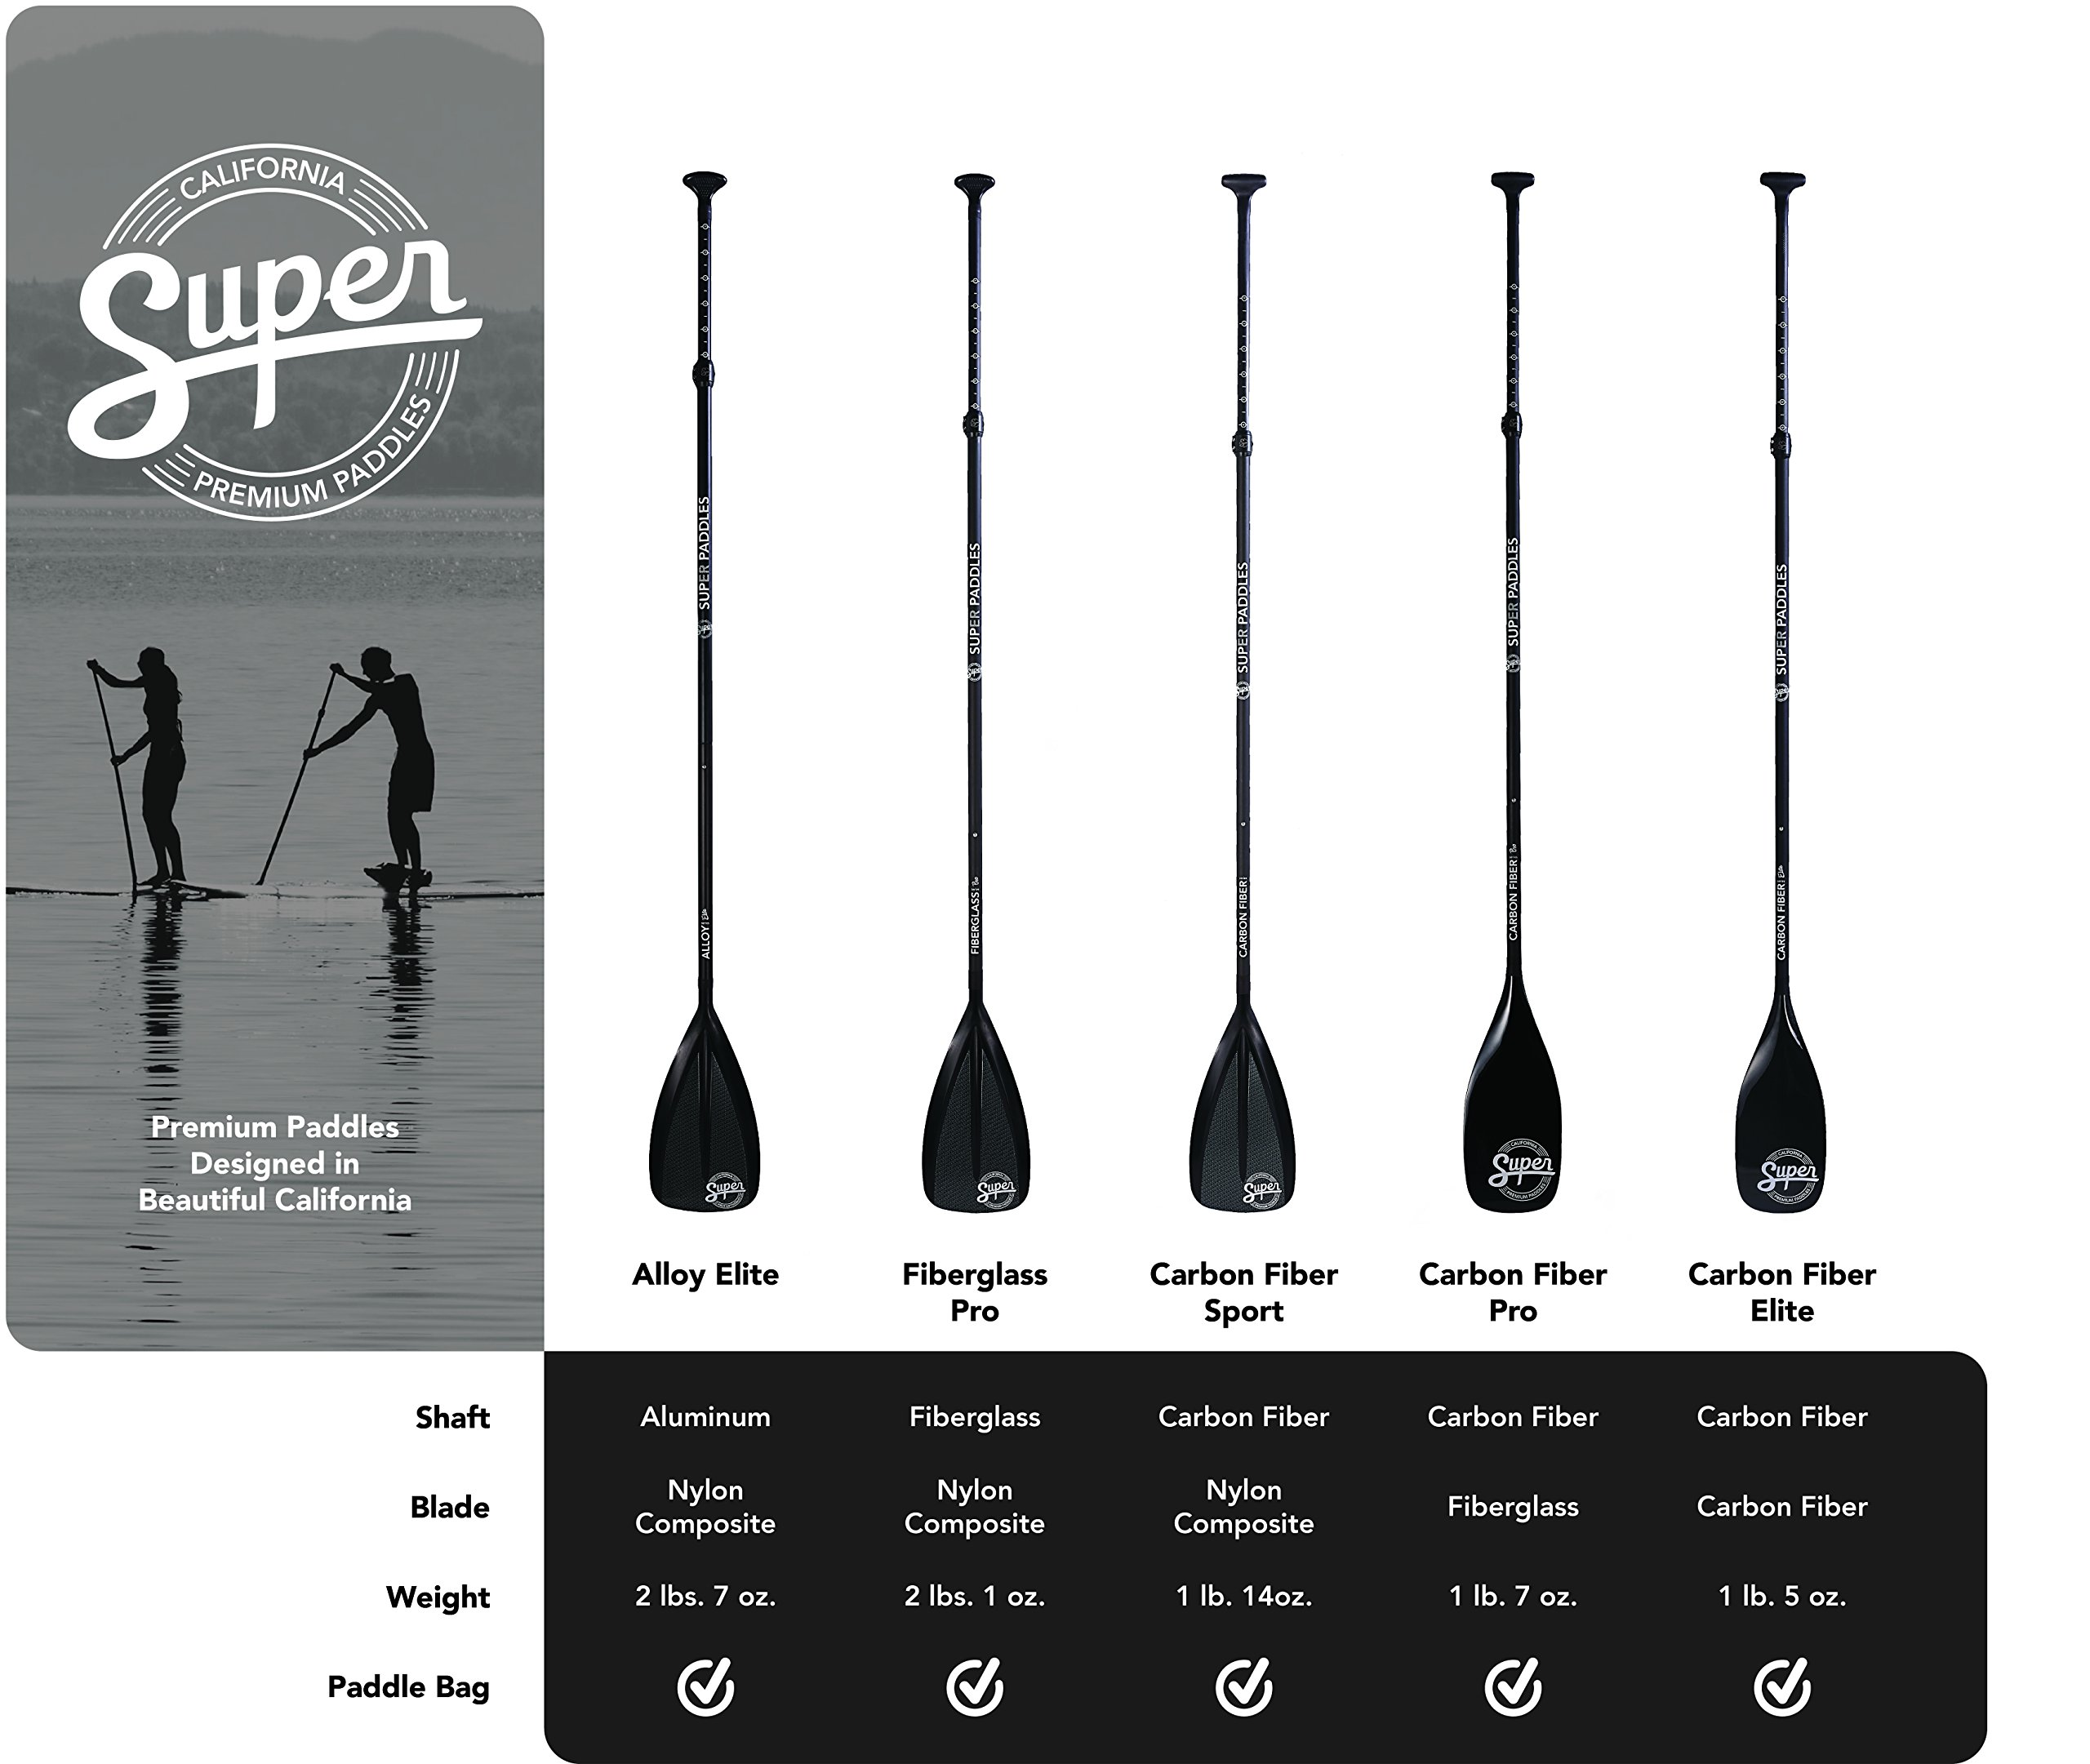 Super Paddles Carbon Fiber SUP Paddle - 3-Piece Adjustable Stand Up Paddle with Paddle Bag Carbon Fiber Series Pro - Carbon Fiber Shaft, Fiberglass Blade by Super Paddles (Image #8)